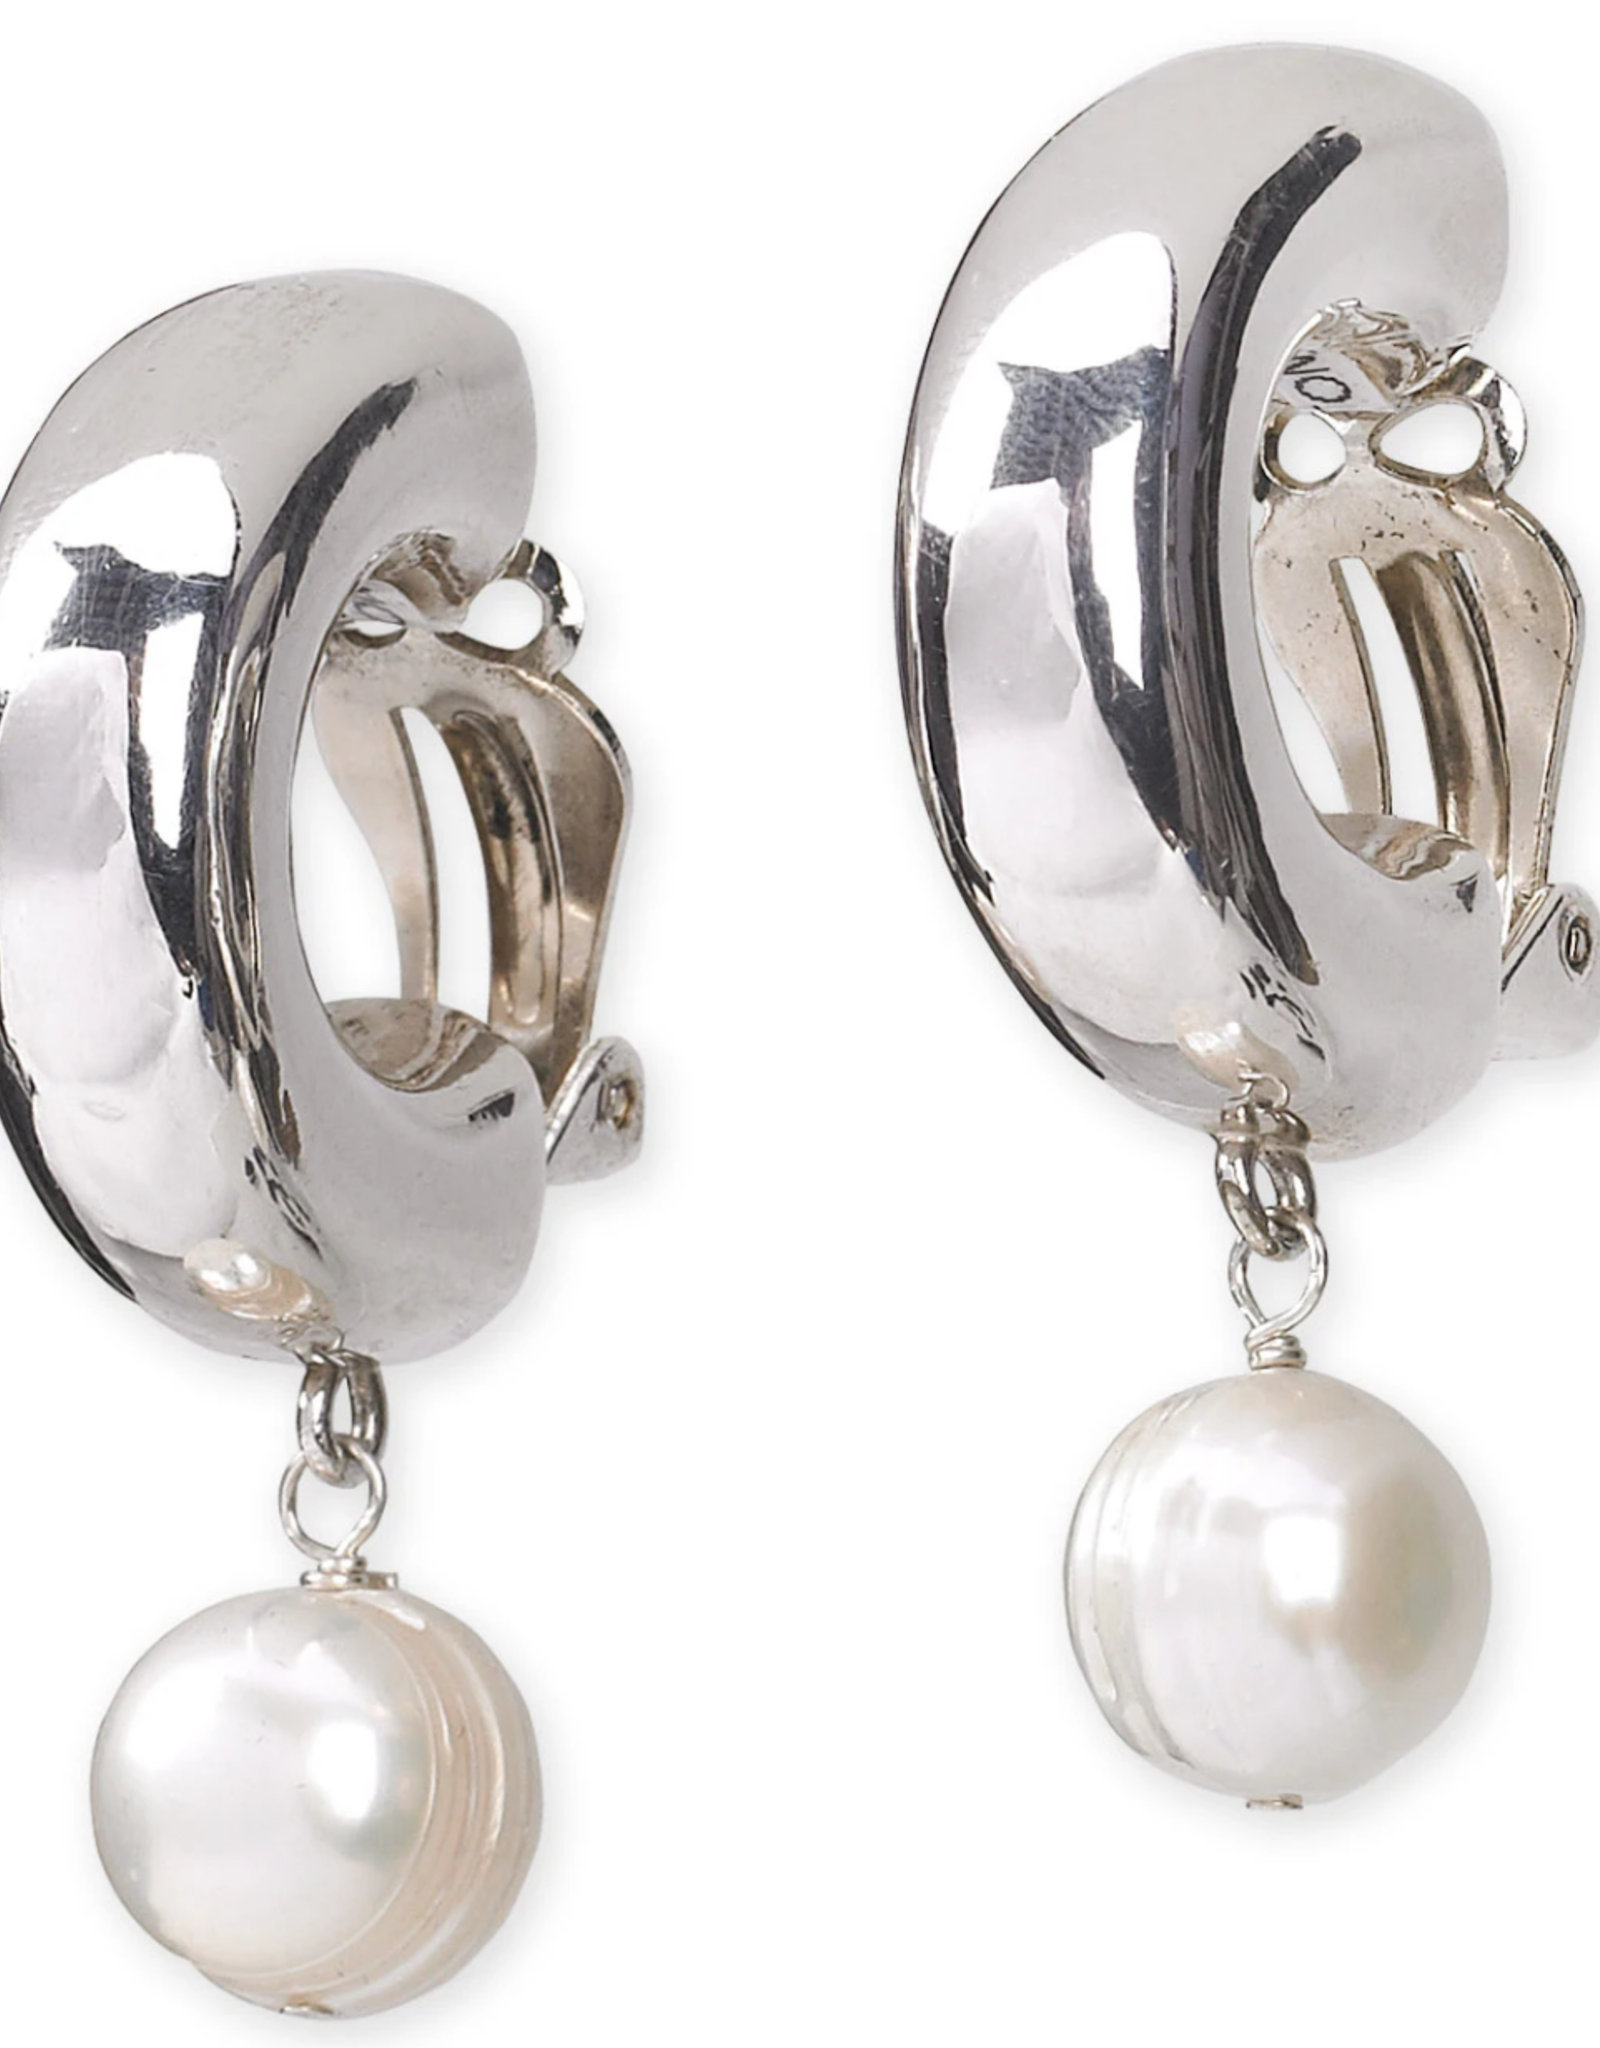 Simon Sebbag Designs Clip White Shell Pearl Tr Drp Earrings